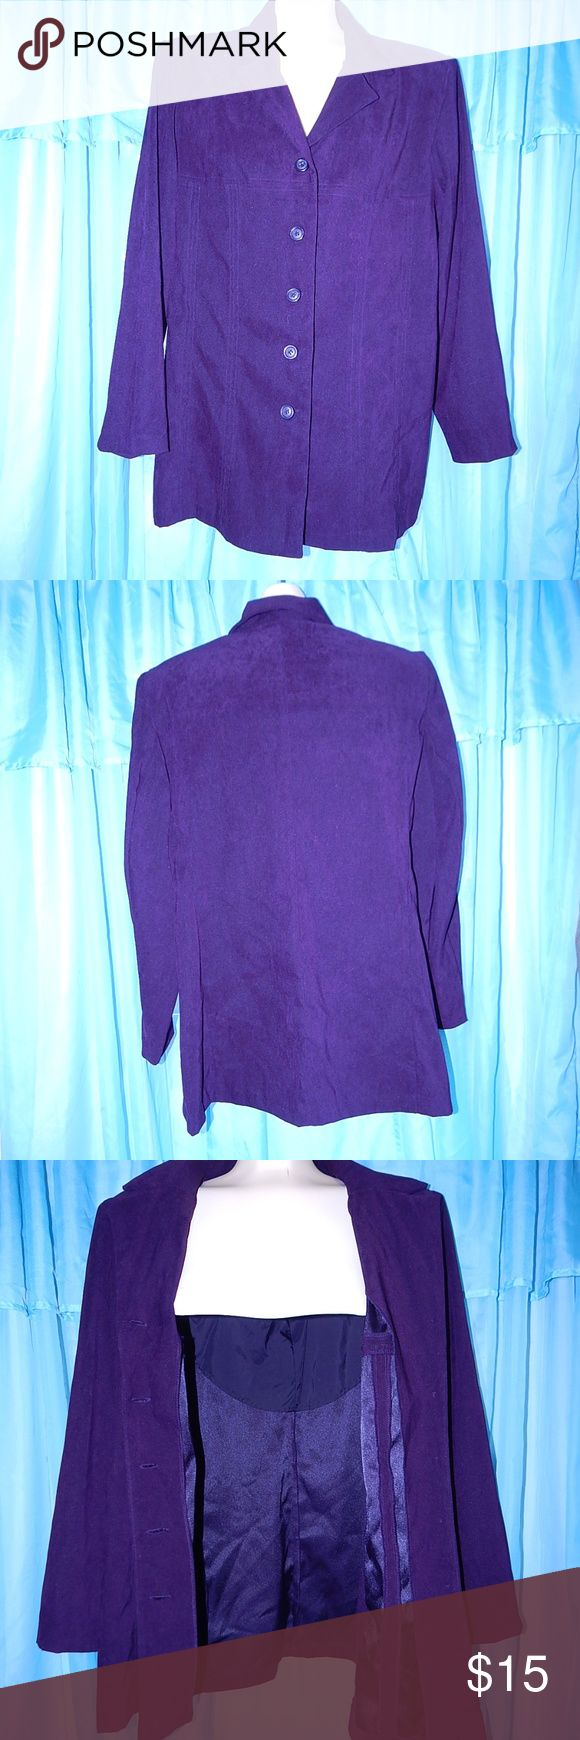 """Fashion Bug STRETCH PURPLE Suede Feel Blazer S 14 This is a Fashion Bug Stretch velveteen/suede feel (97% polyester/3% spandex) purple blazer, size 14.  The style # is 308167X, cut 703694, RN 83082.  The length is 31"""".  Reasonable offers welcome!  All of my items come from a smoke and fur free home. Fashion Bug Jackets & Coats Blazers"""